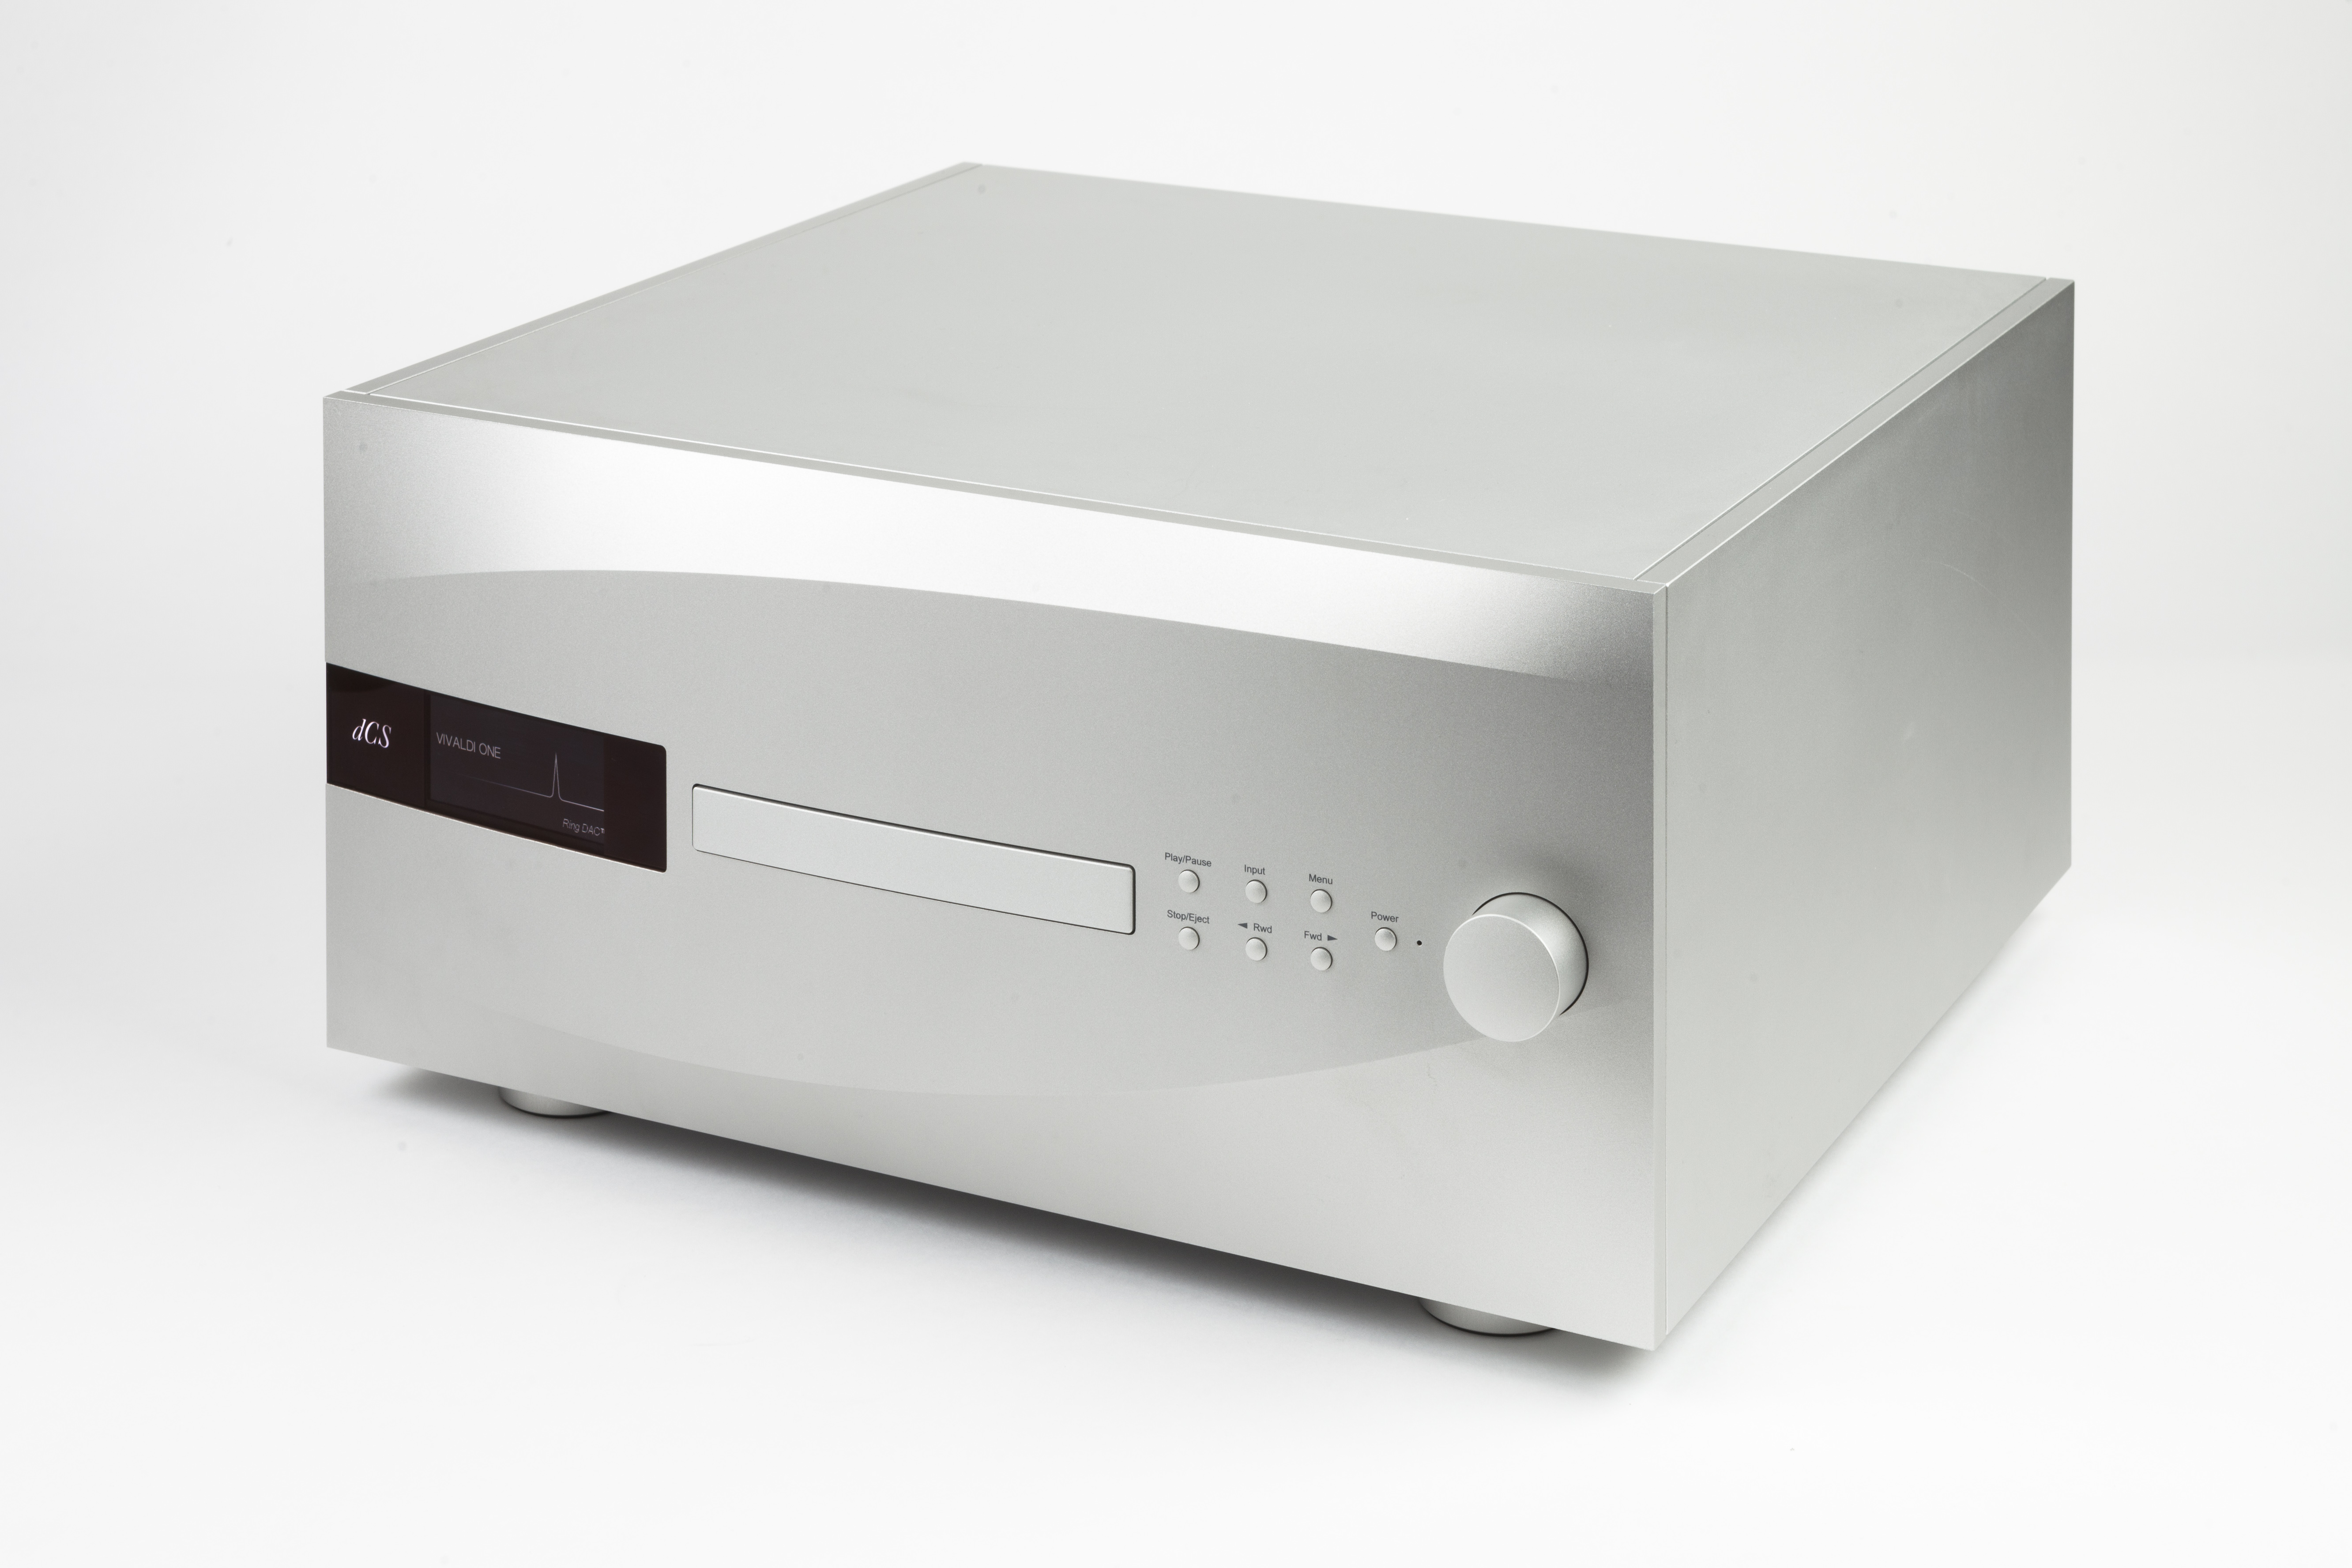 Sources American Sound Of Canada Meridian Audio Mpa Solid State Amplifier One Cd Sacd Player And Network That Supports Music From Any Digital Source Via Usb Aes Ebu S Dif Inputs In Addition To Streaming Its